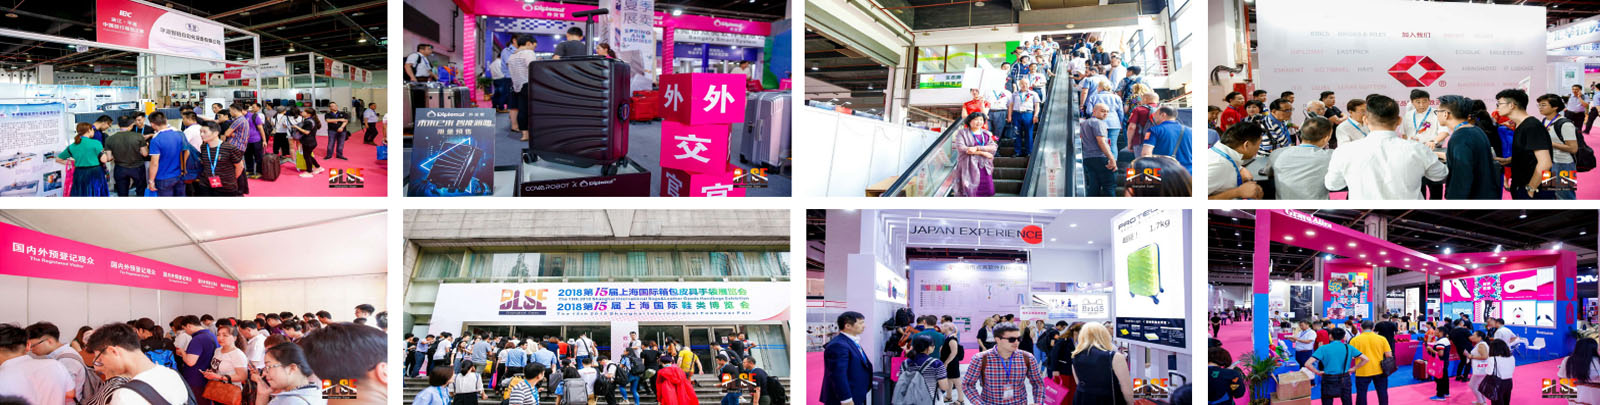 http://www.chinabagexpo.com/js/image/1-1.jpg